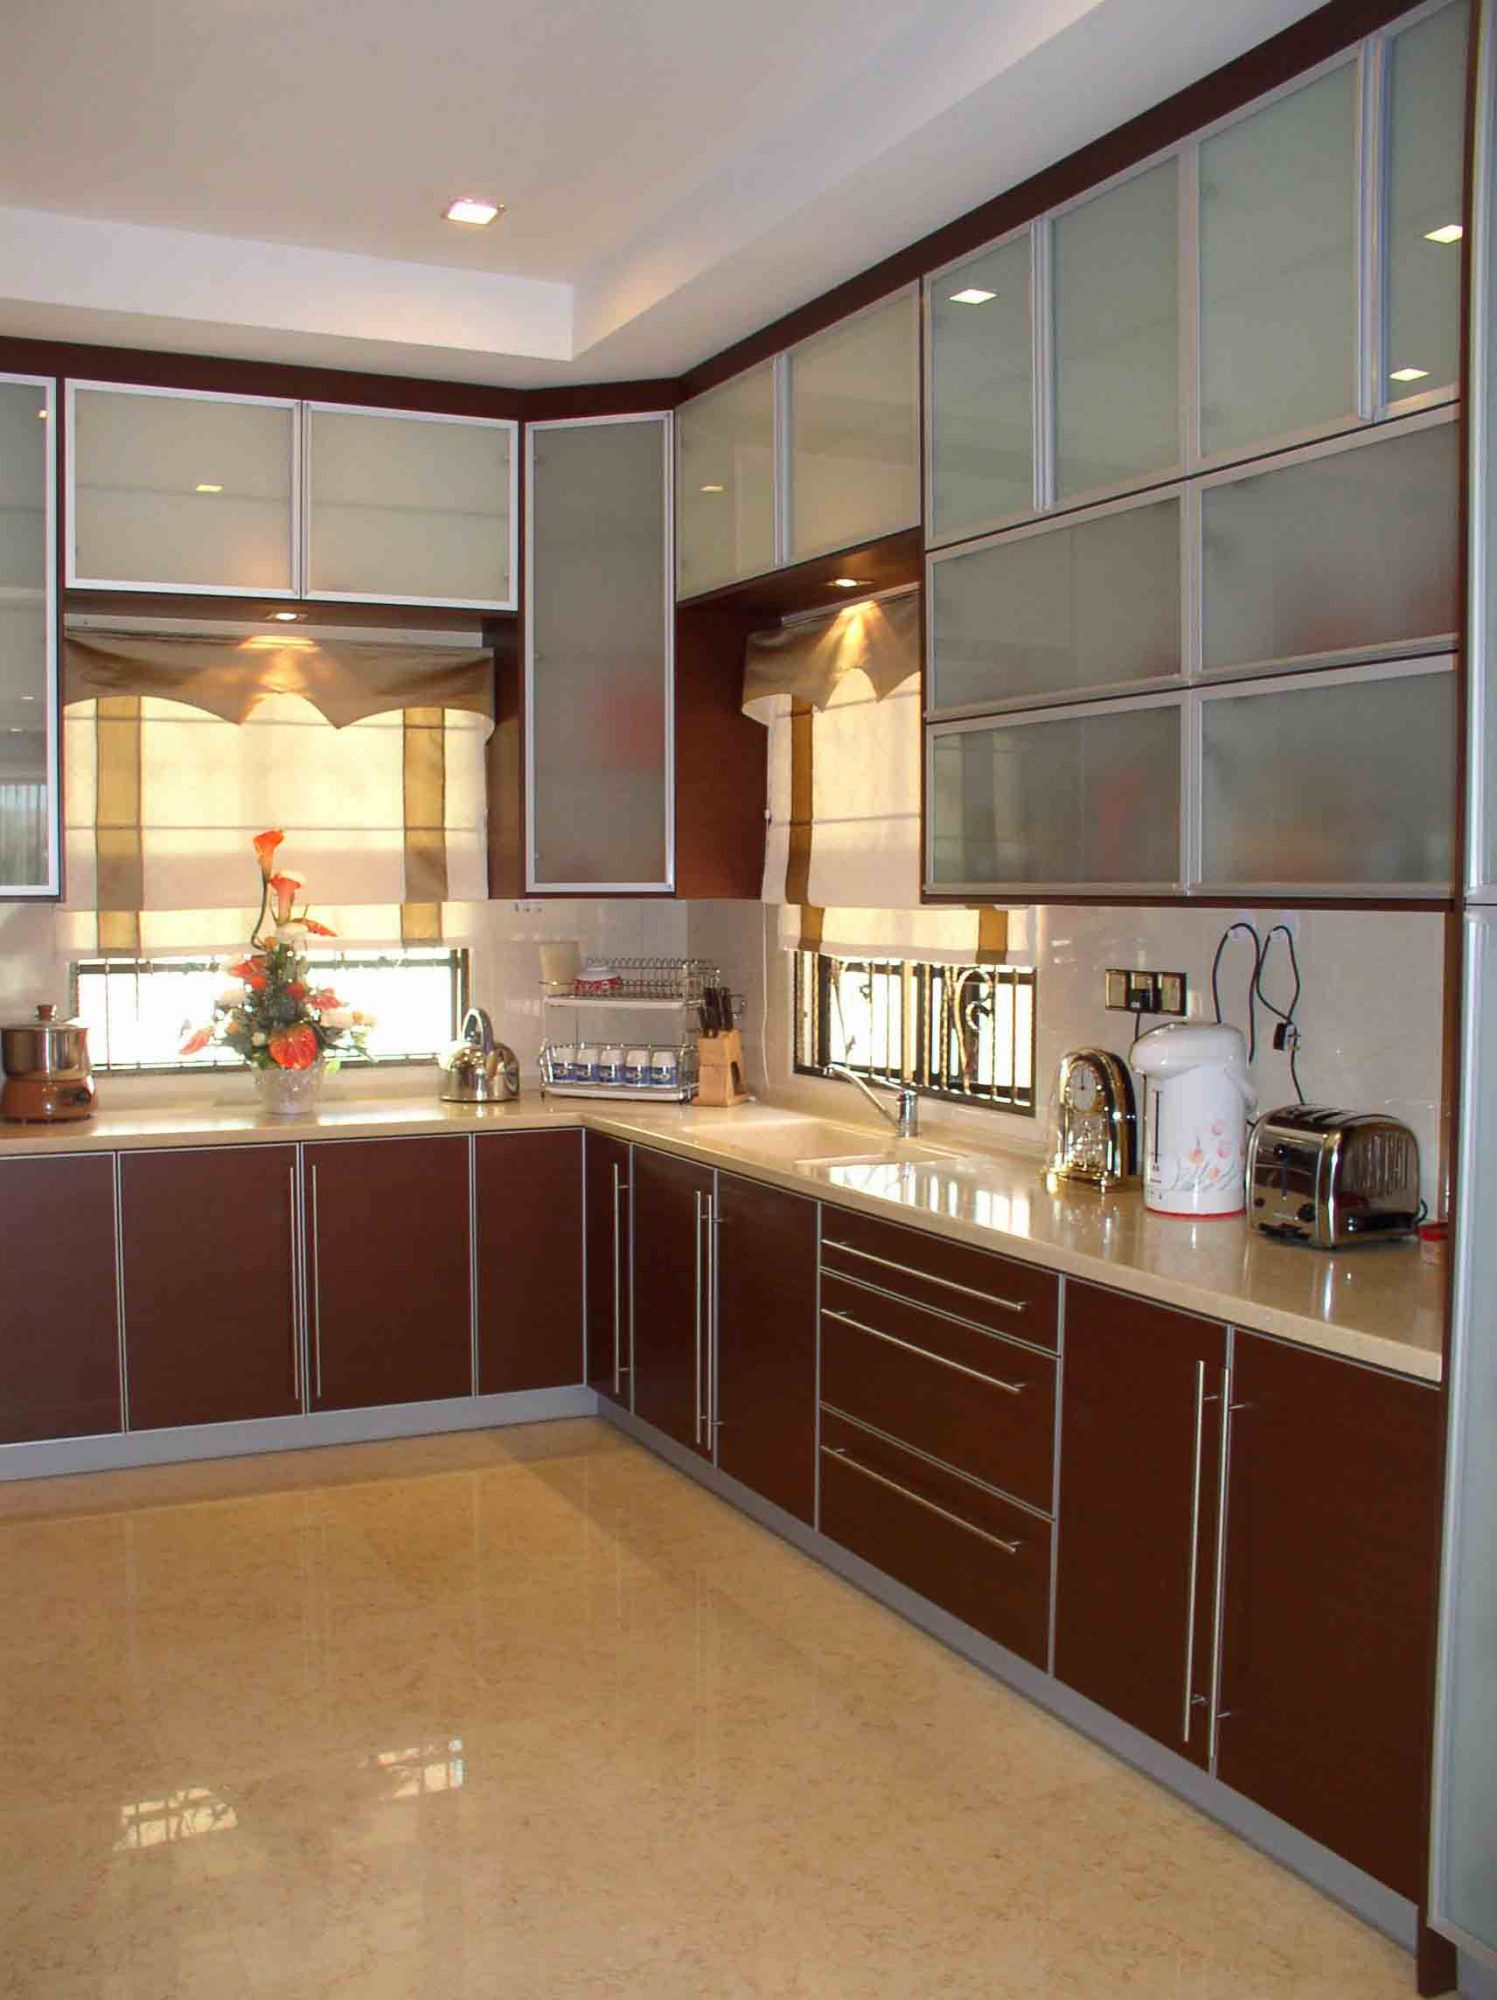 kitchen design with cabinets 20 popular kitchen cabinet designs in malaysia recommend 172